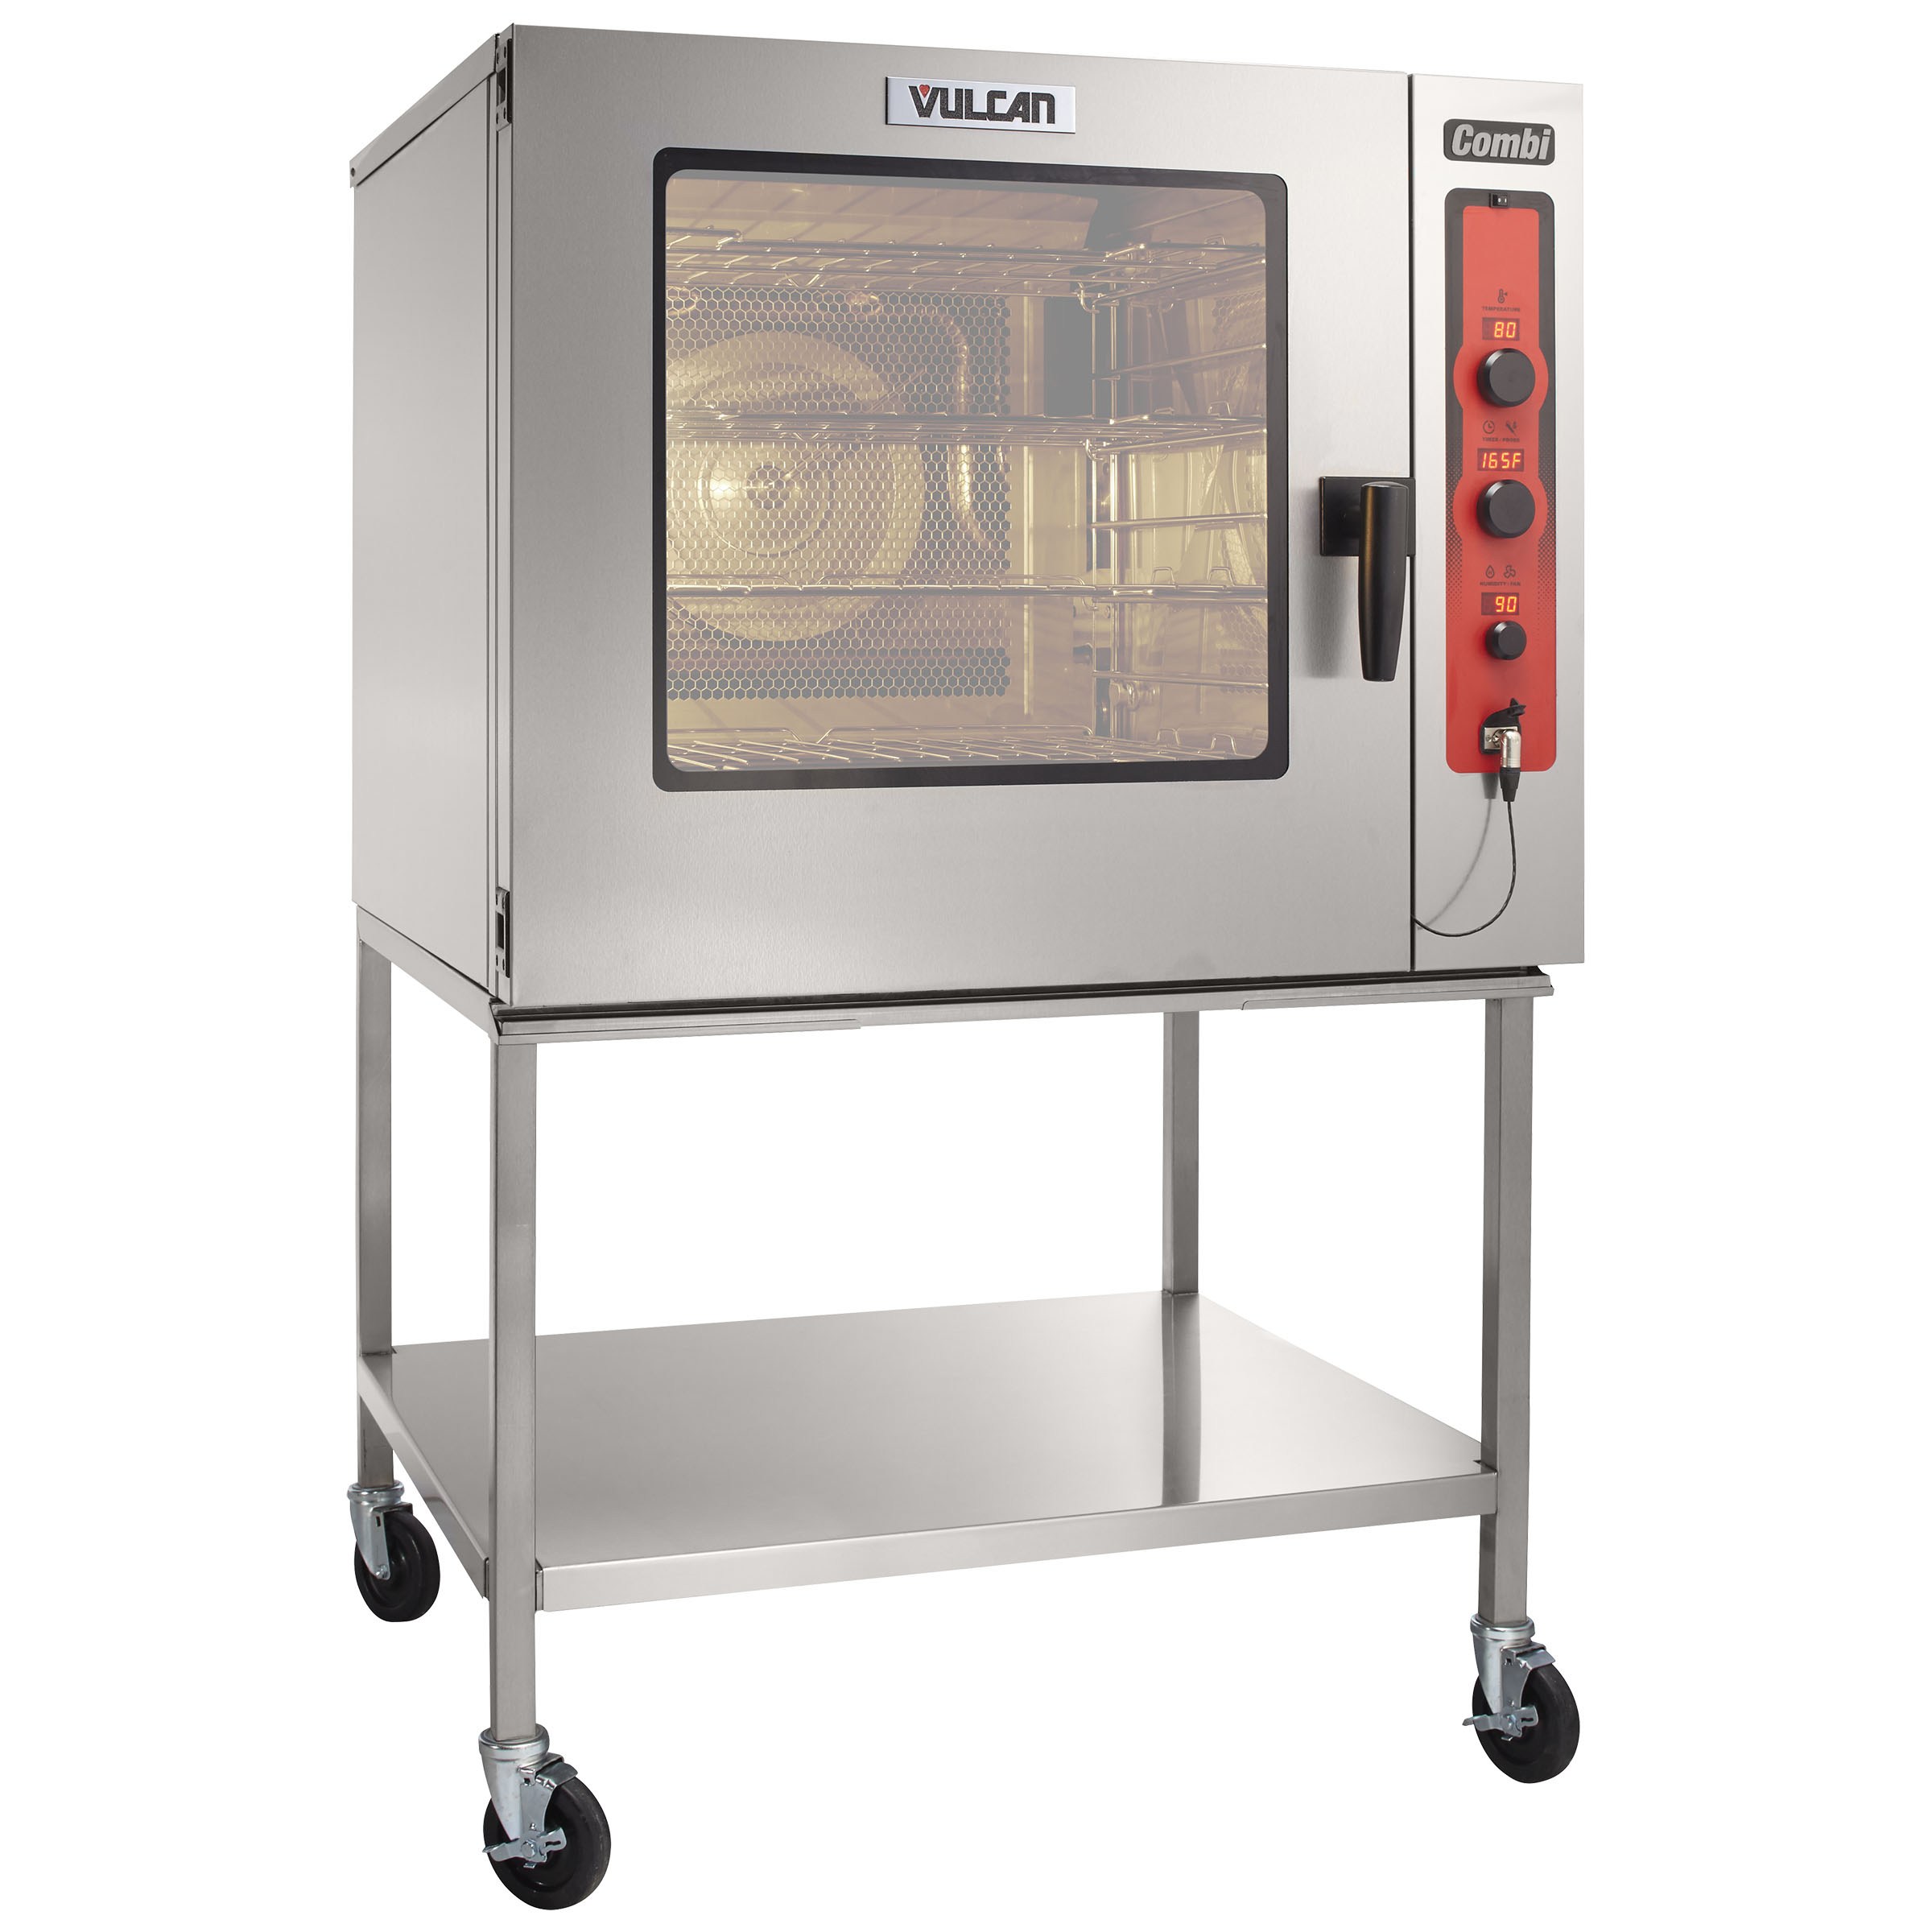 Vulcan ABC7E-240 combi oven, electric